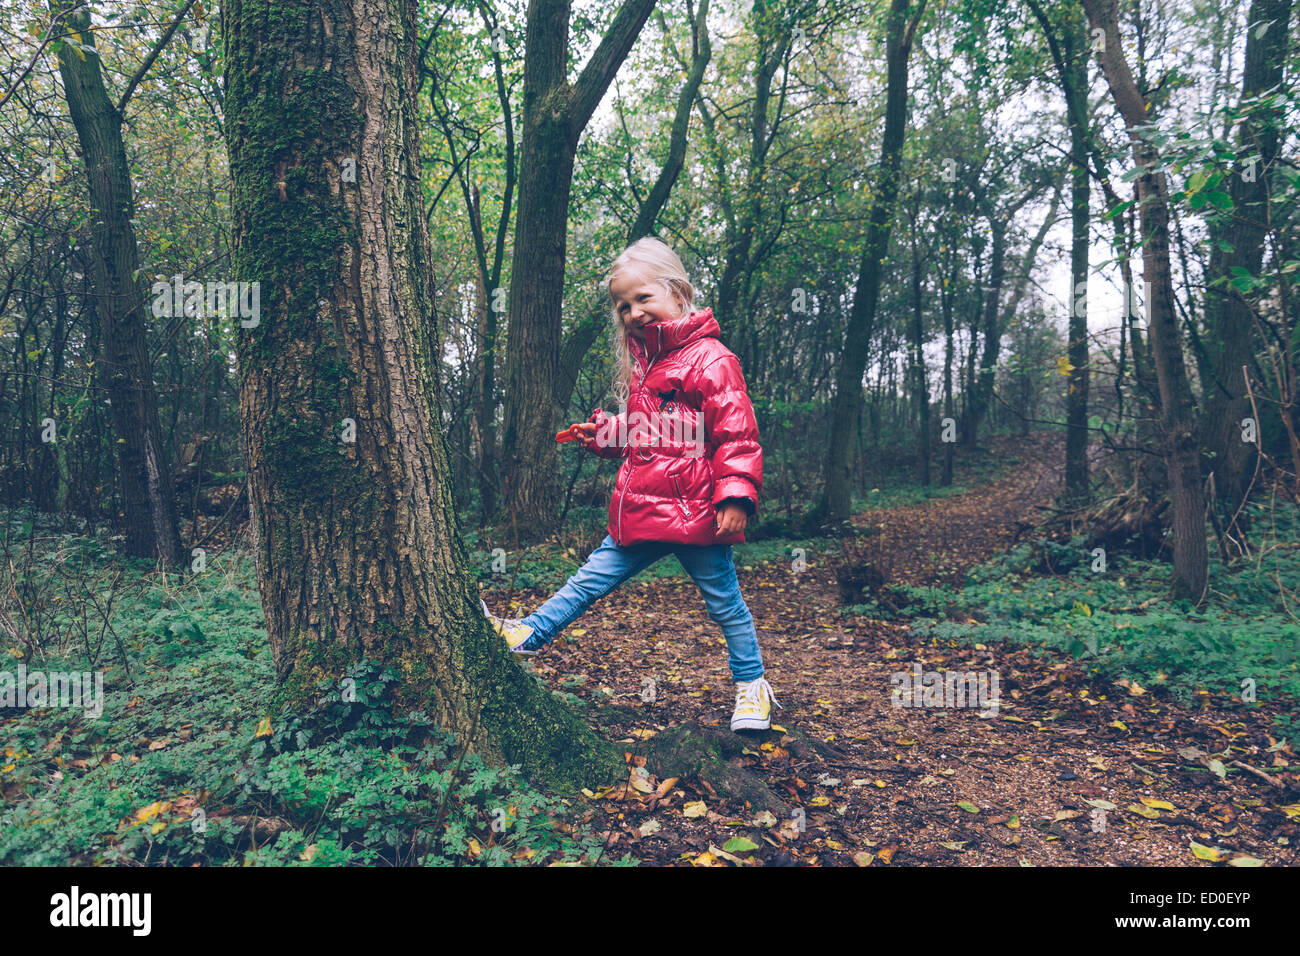 Girl messing about in the woods, Ritthem, Zeeland, Holland - Stock Image